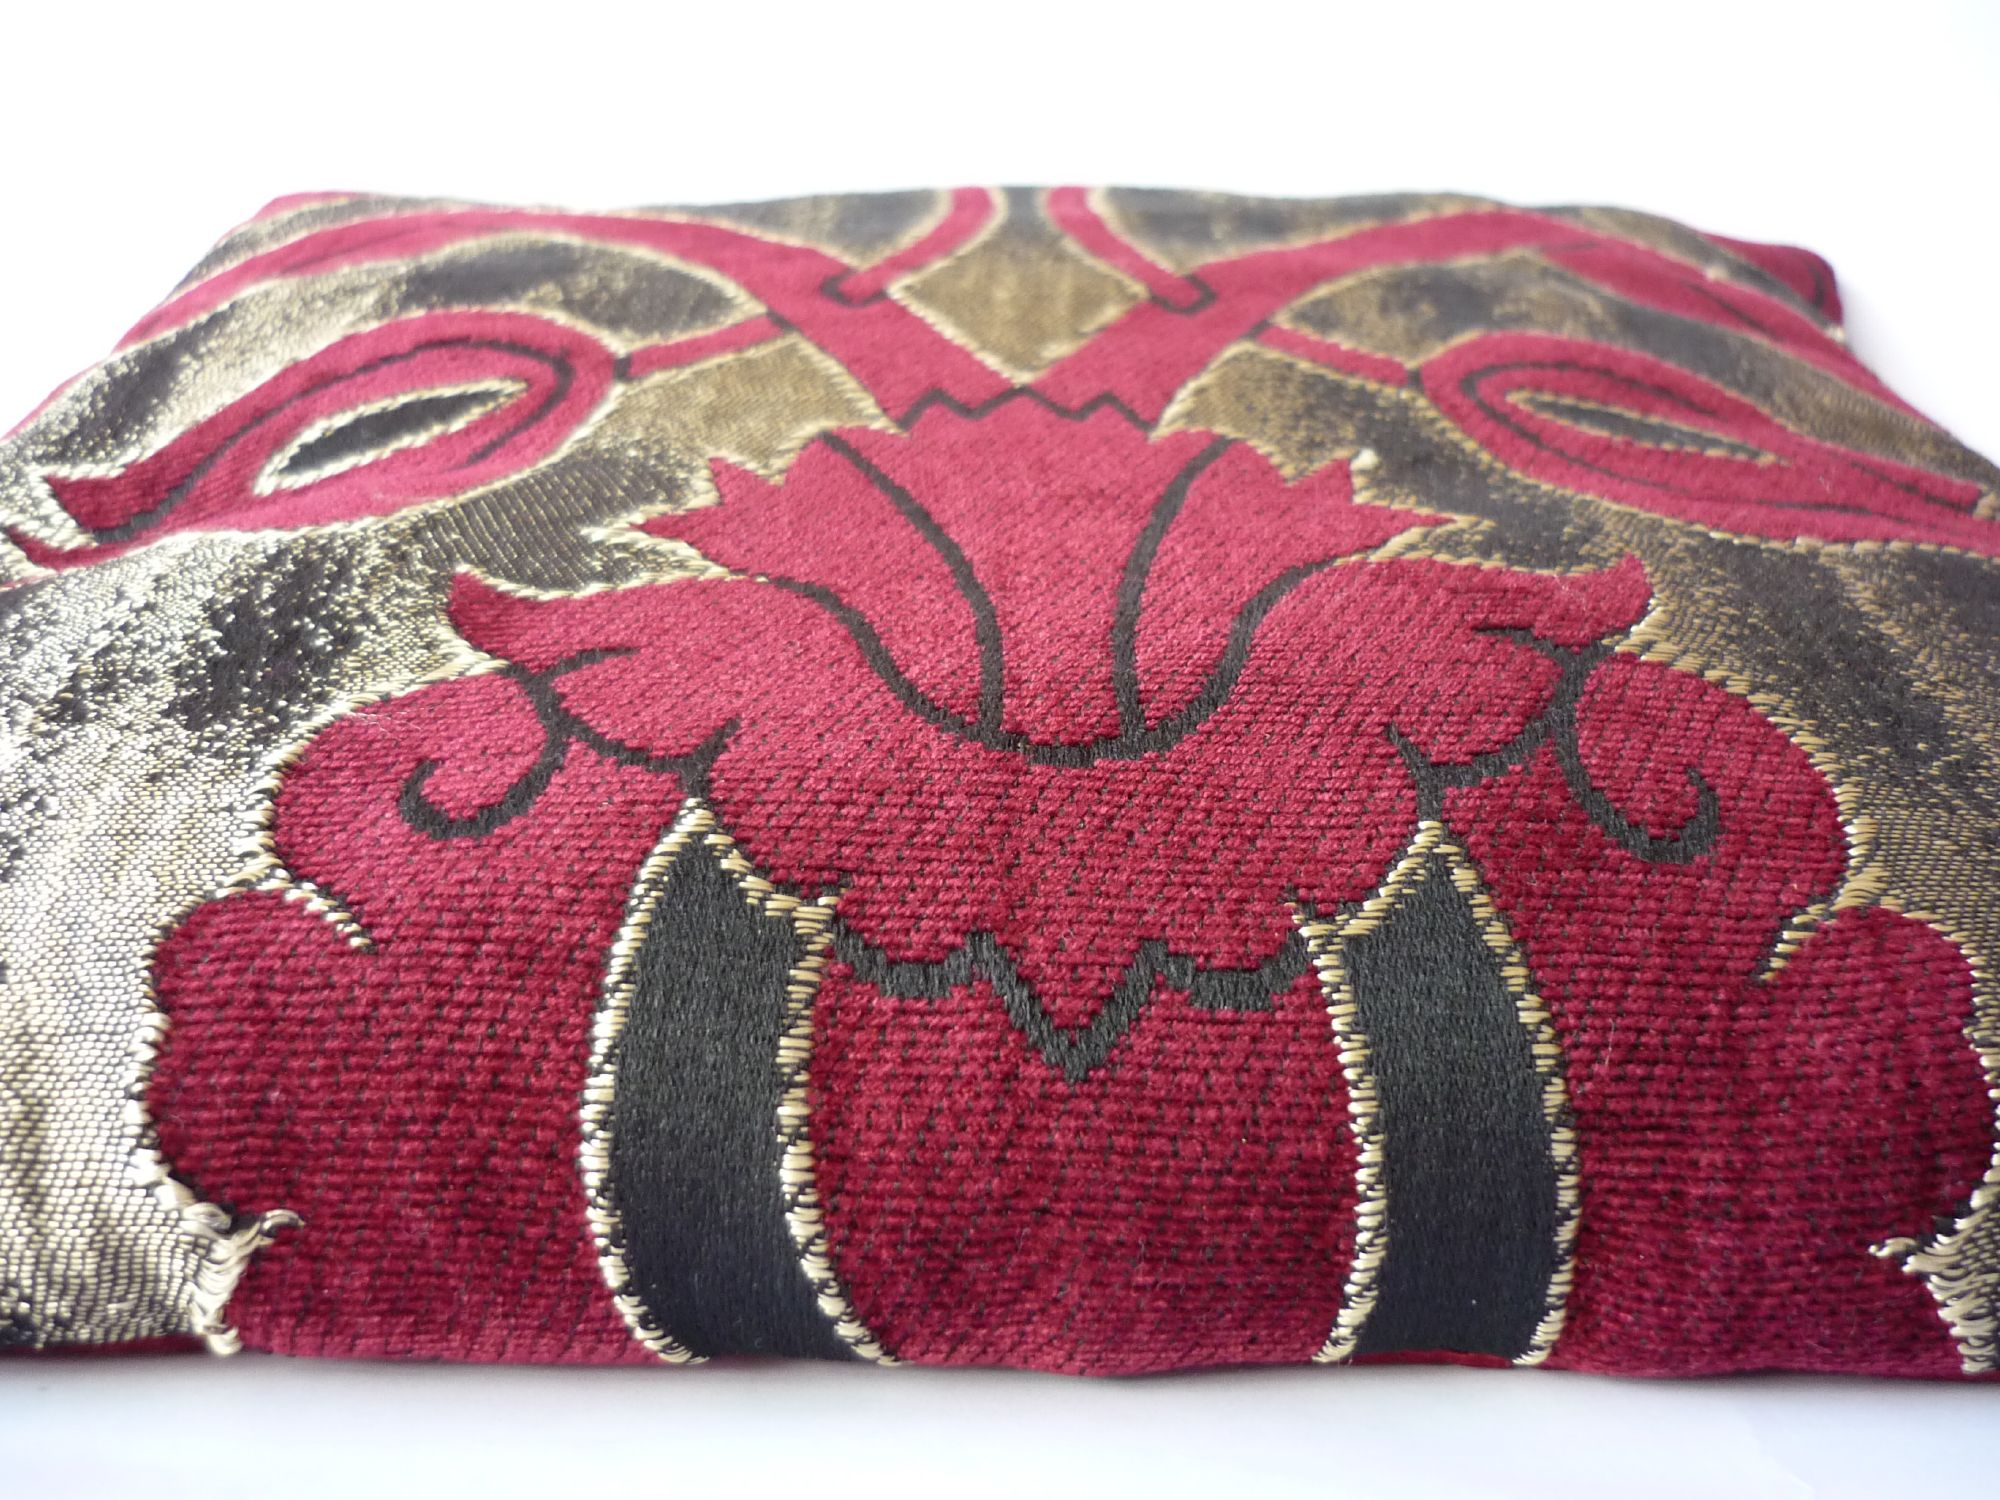 Free photo: Cushions - Red, Sewed, Pillow - Free Download - Jooinn